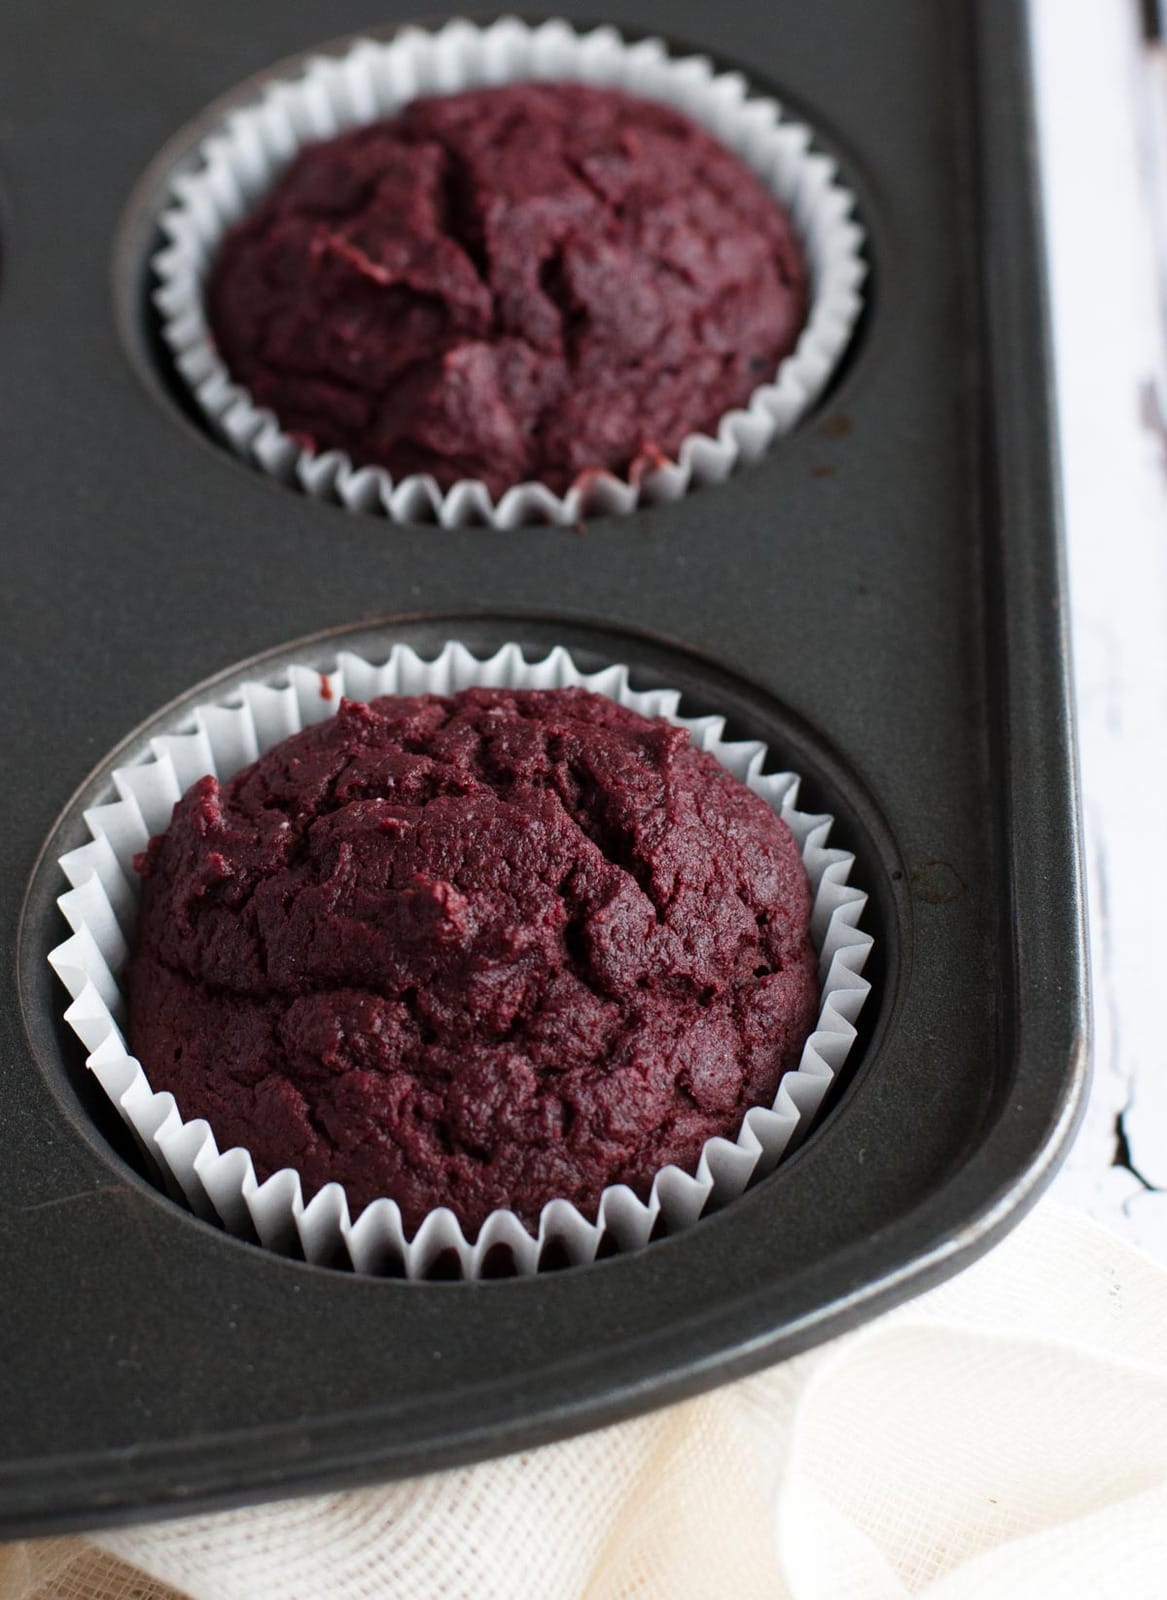 Healthy yet tasty beet red velvet cupcakes are made with whole wheat flour and no processed sugar. They're topped off with a decadent cream cheese frosting.